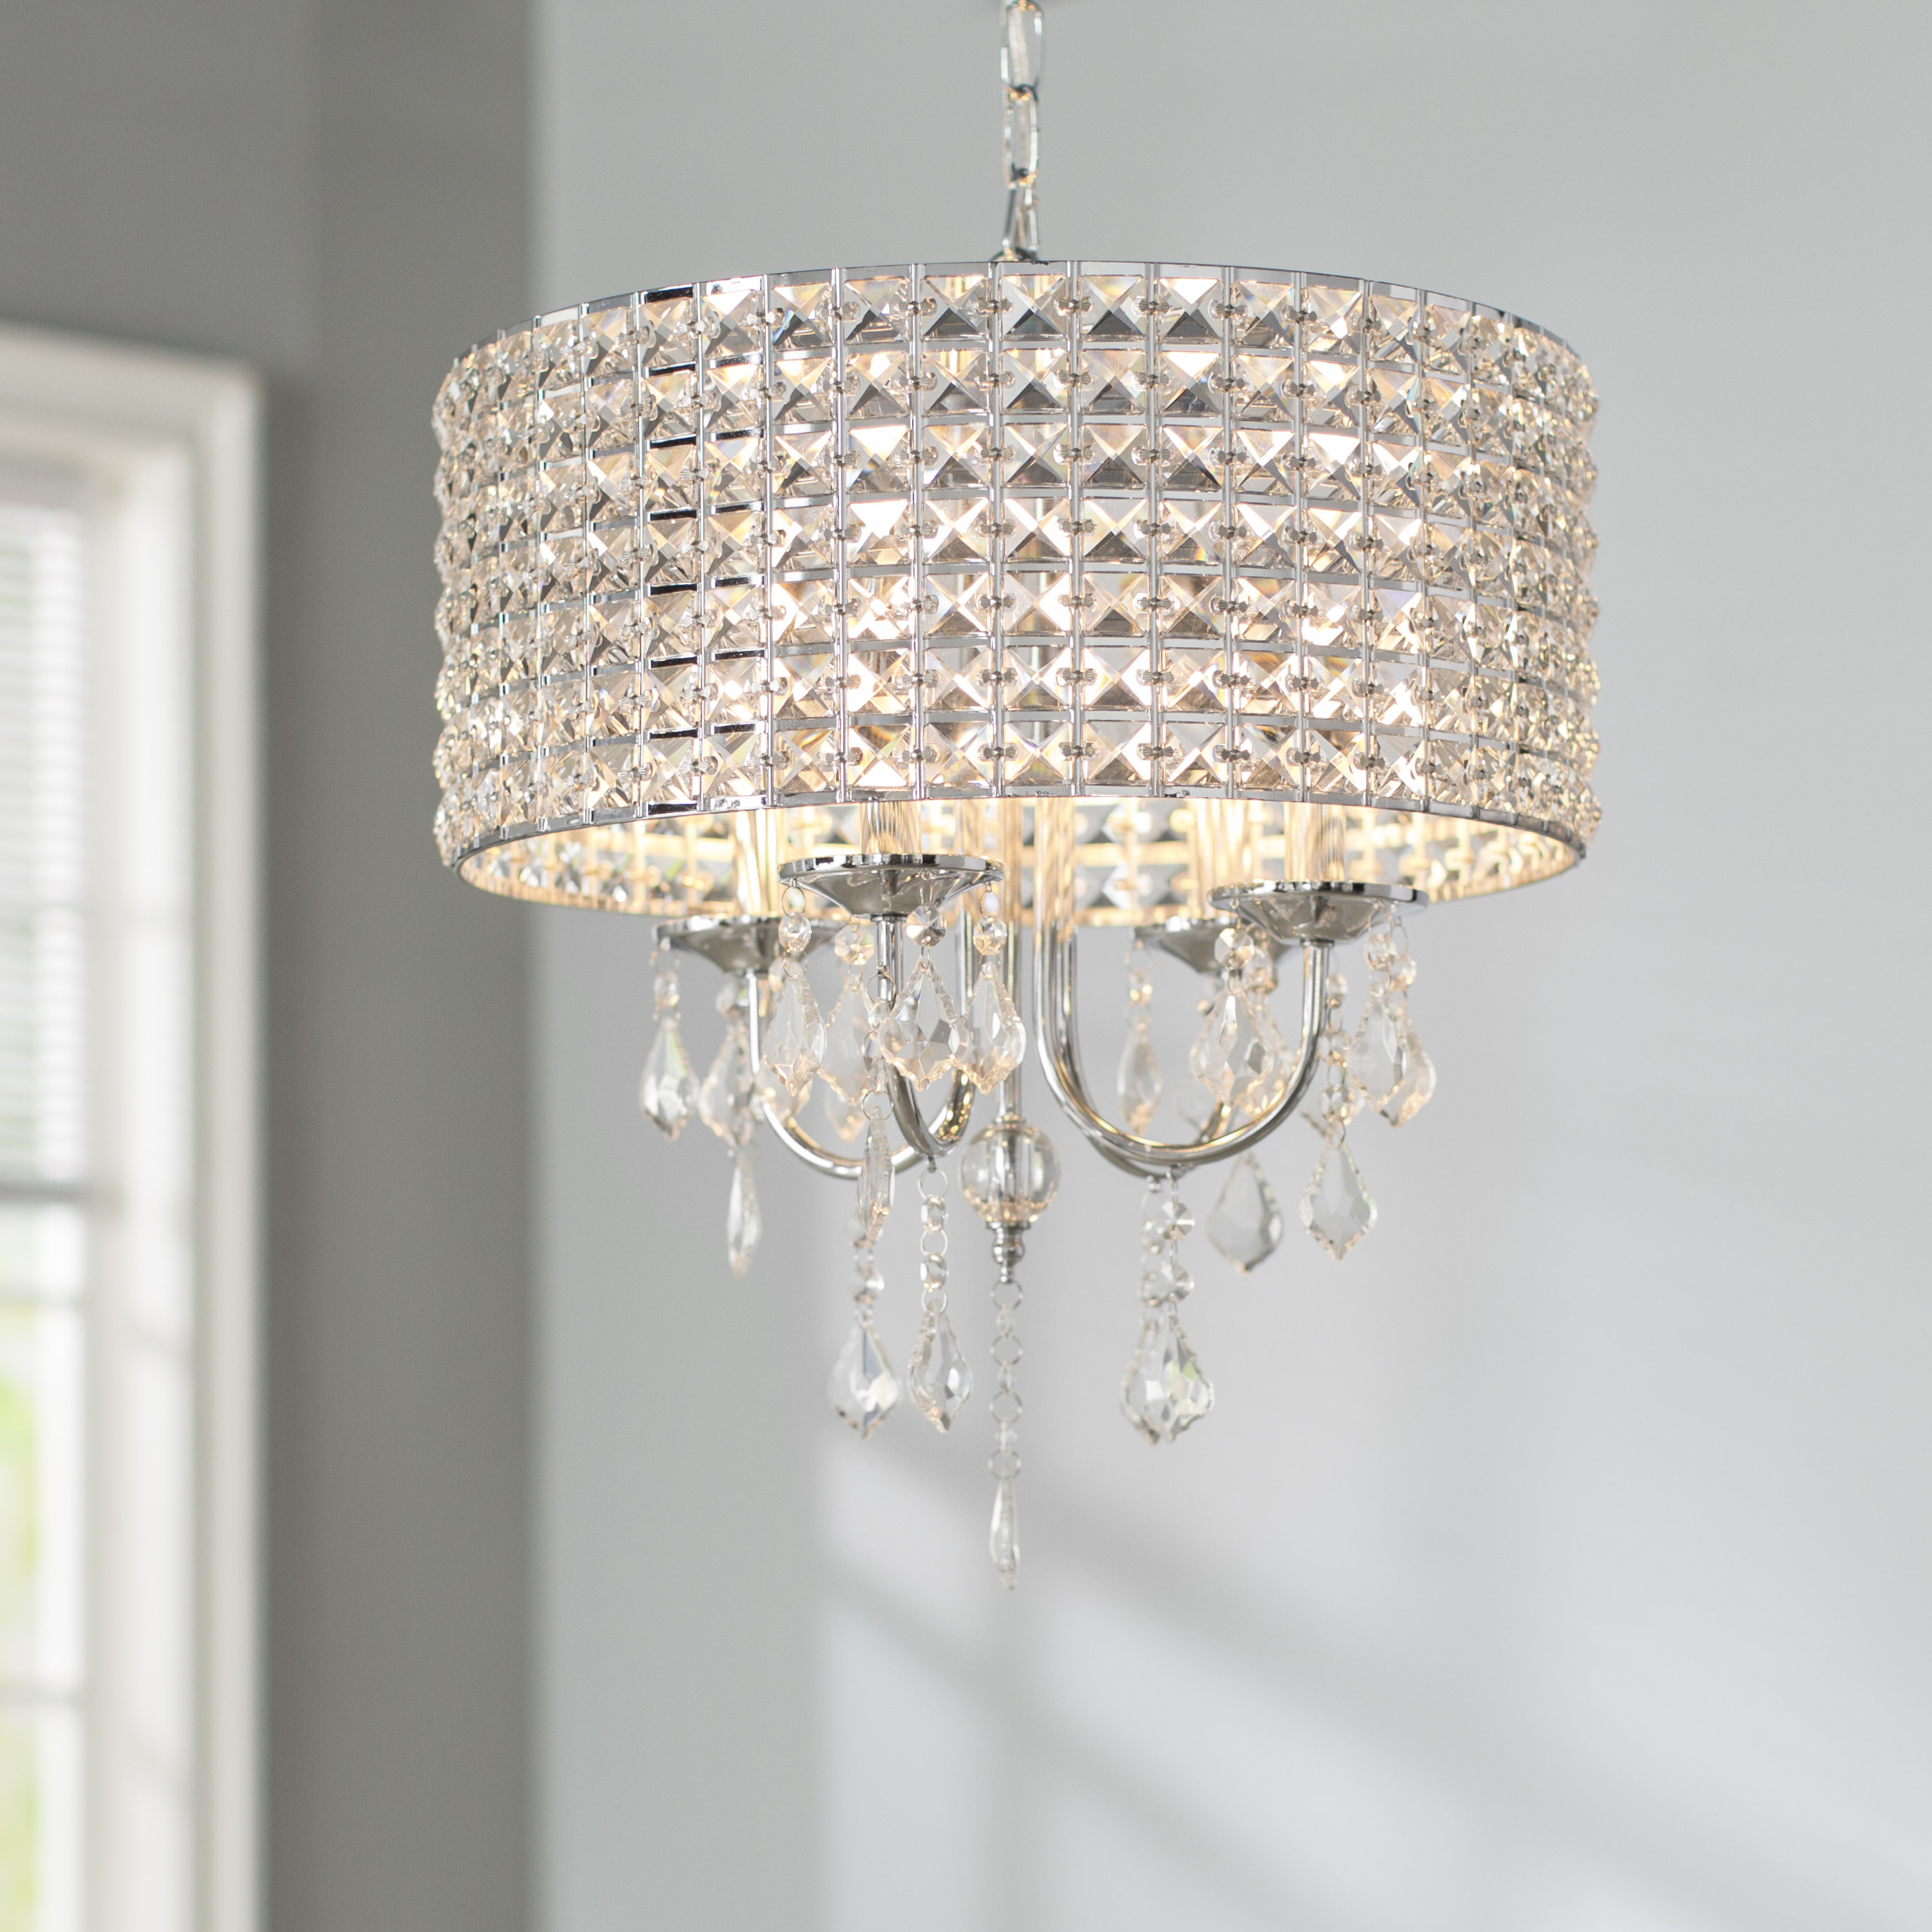 Widely Used Willa Arlo Interiors Albano 4 Light Crystal Chandelier In Albano 4 Light Crystal Chandeliers (View 5 of 25)